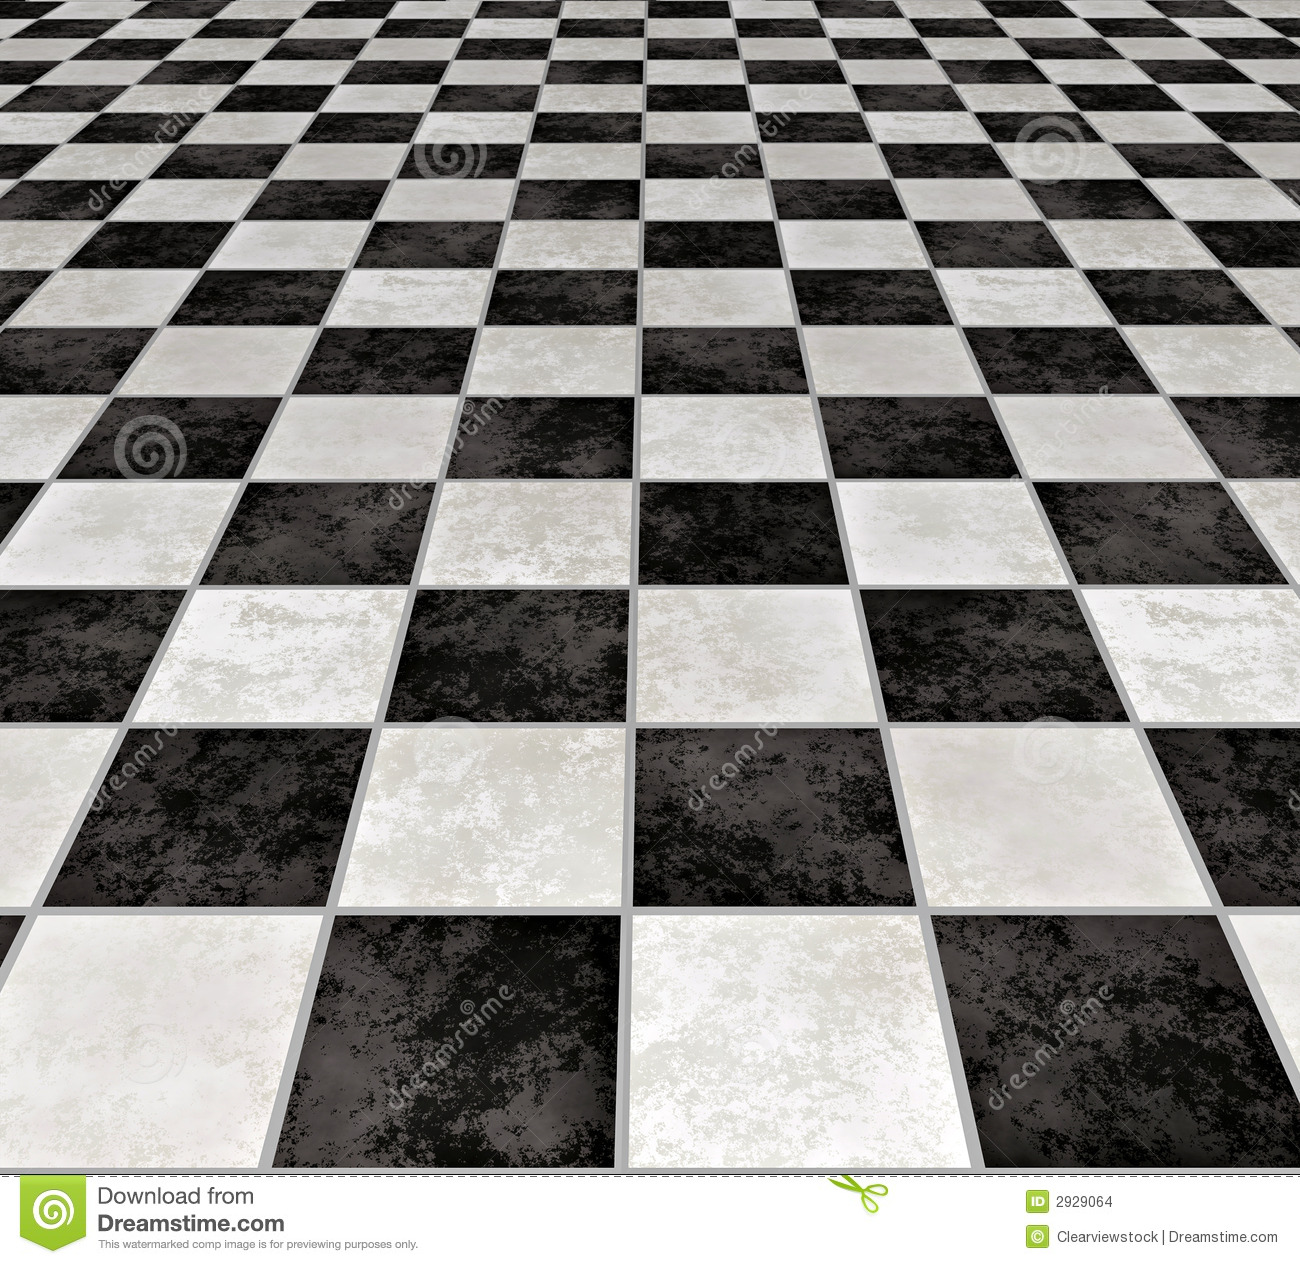 White tile floor clipart suggest